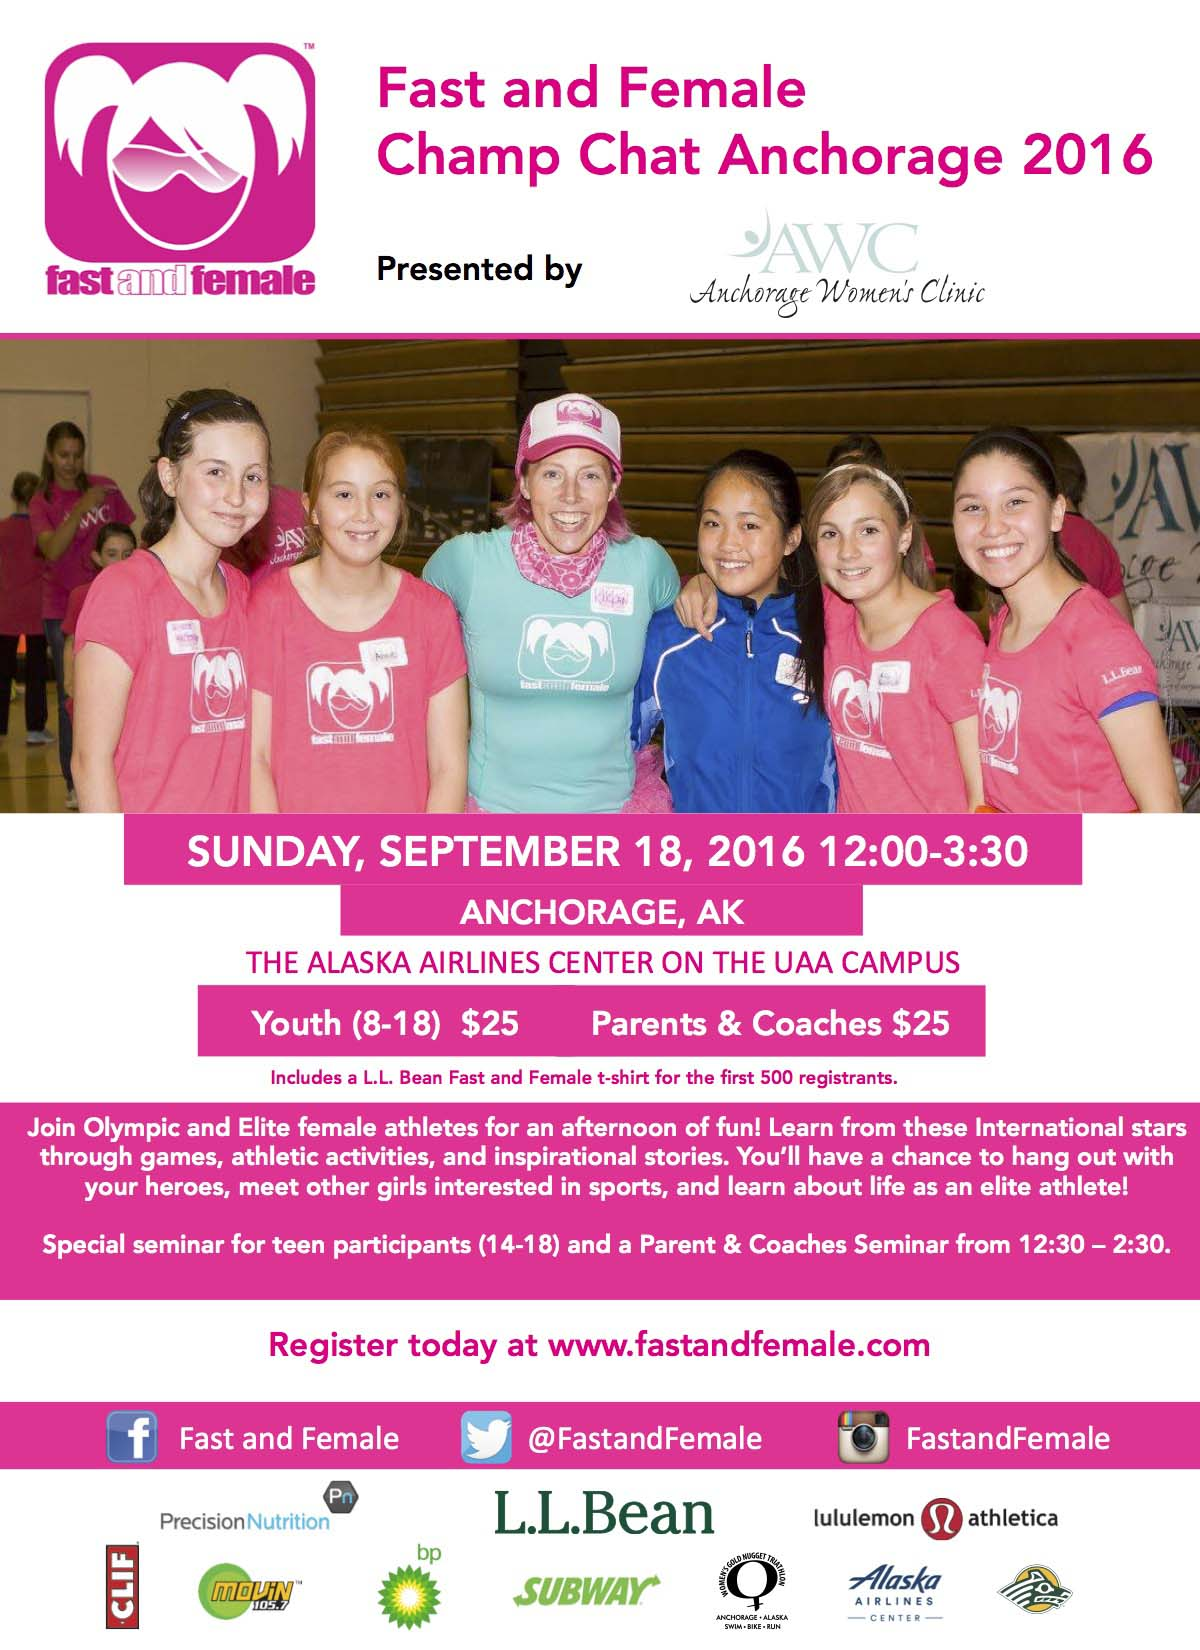 Calling all Anchorage-area Alaskan girls ages 8-18